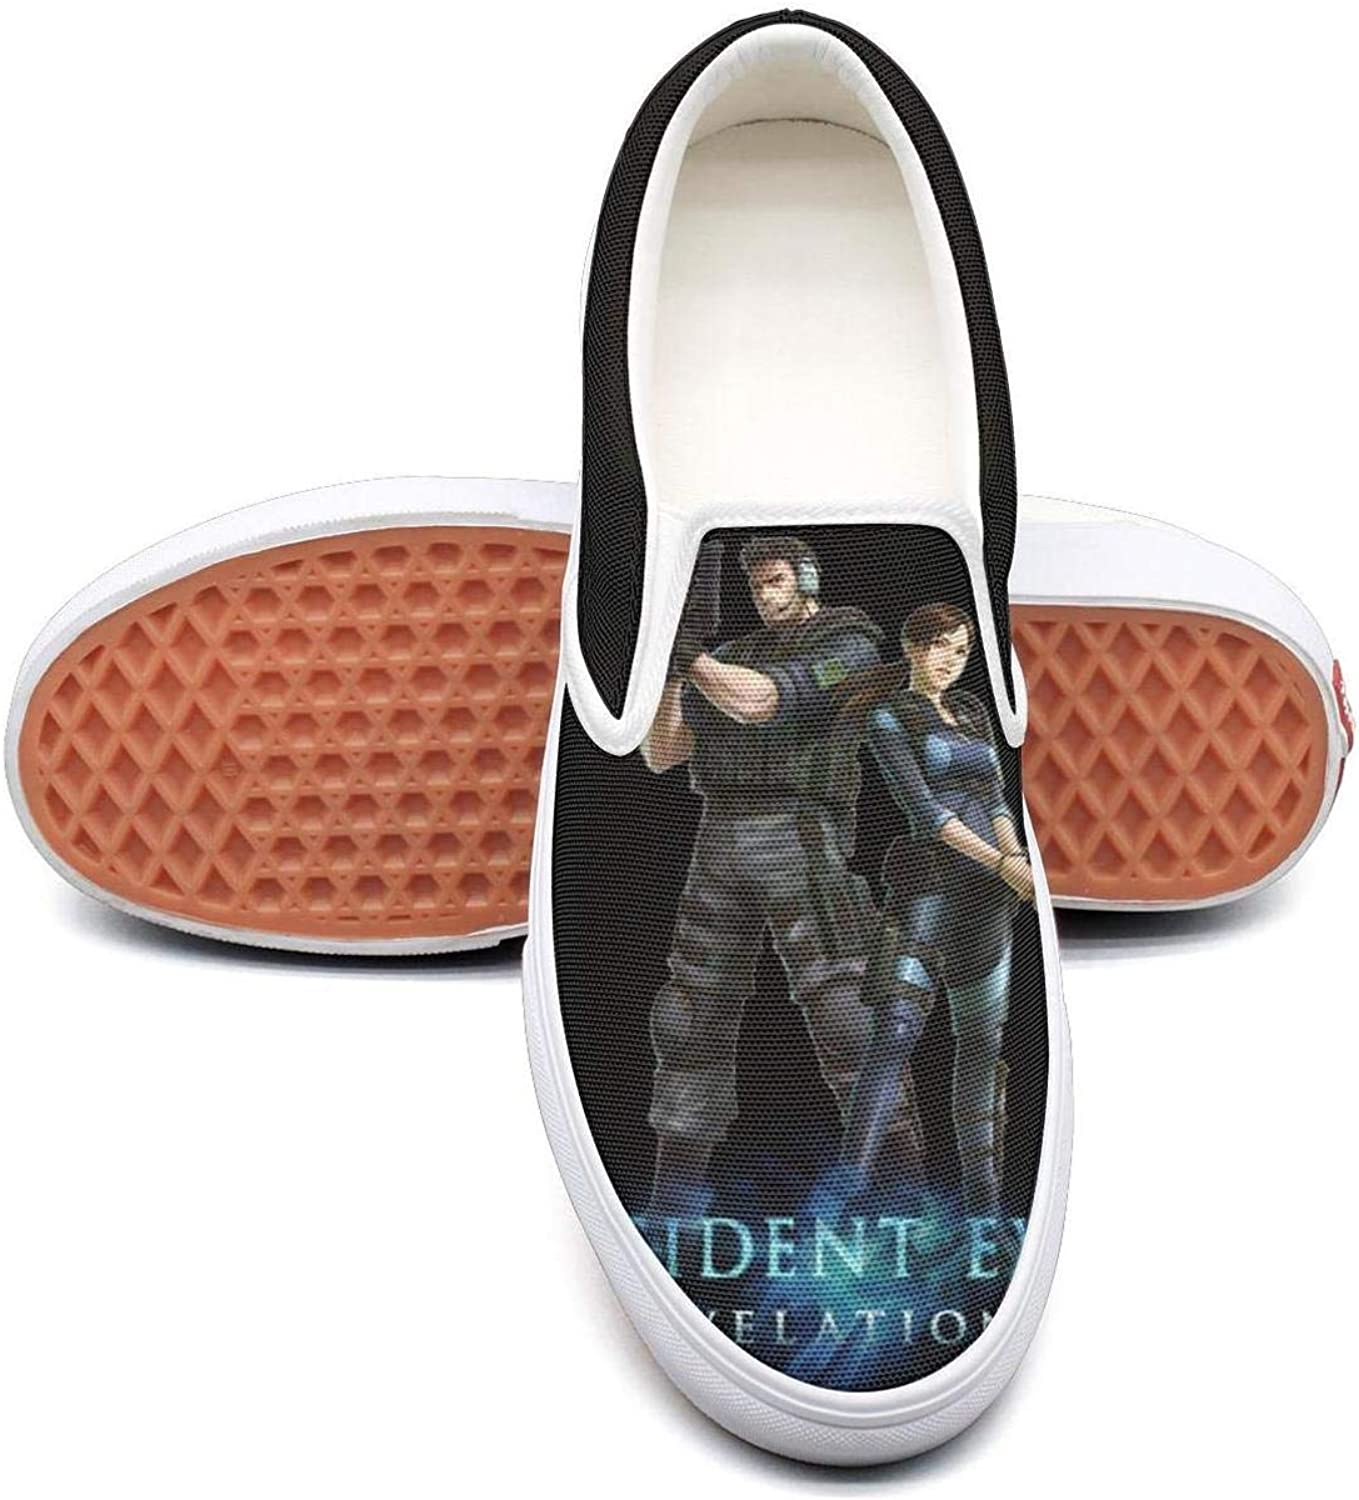 RESIDENT-EVIL-R.P.D- Classic Women Canvas Slip-Ons Loafer shoes Sneaker